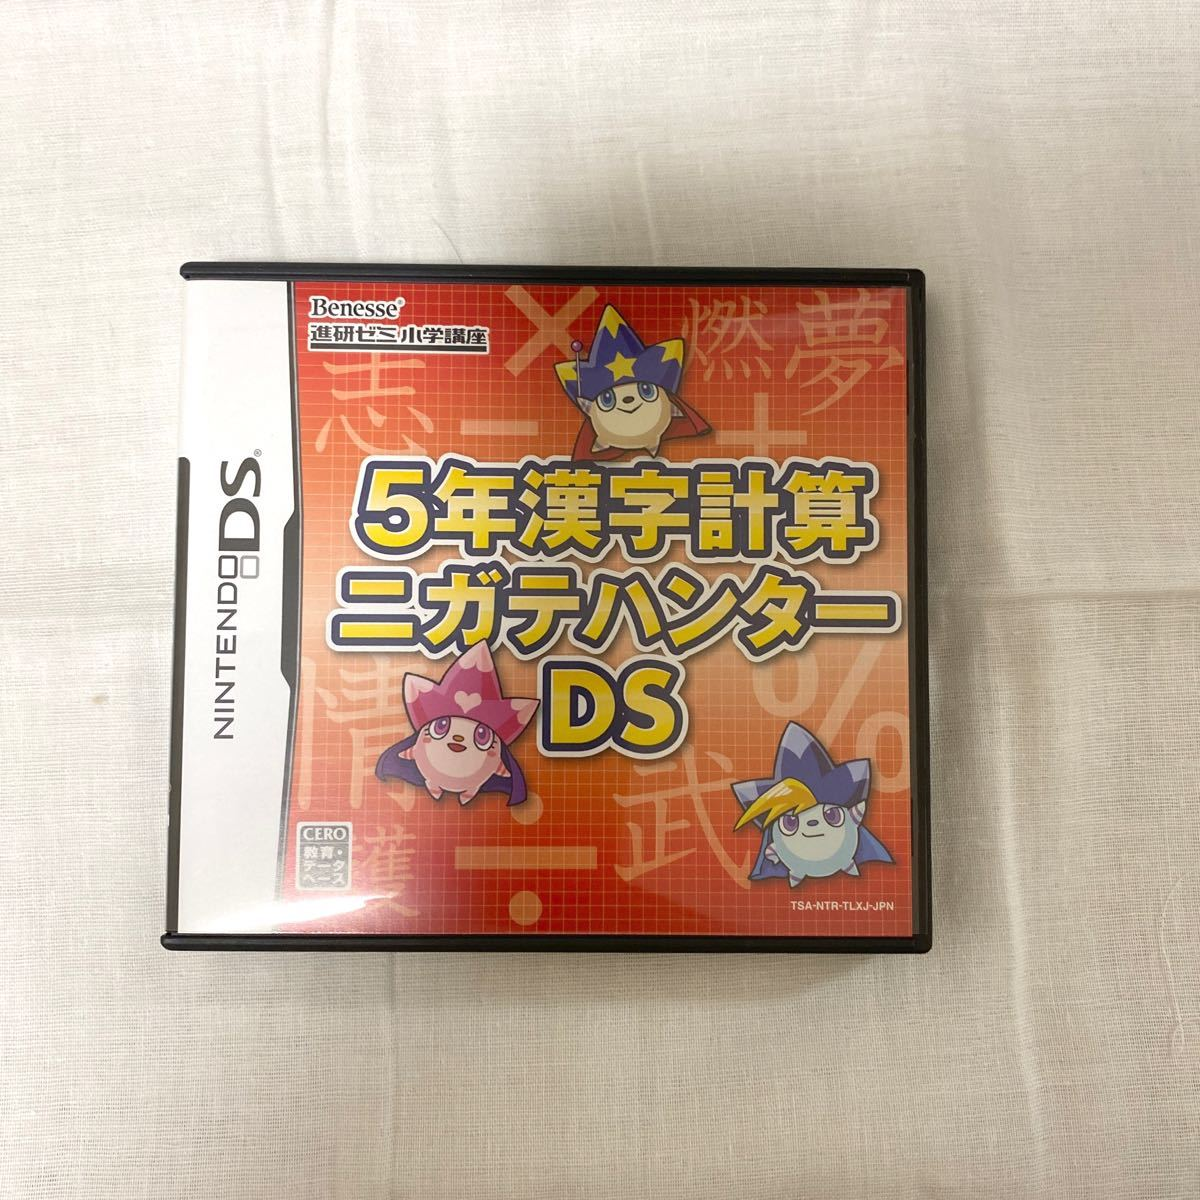 Nintendo DS ソフト 5年漢字計算ニガテハンター DS